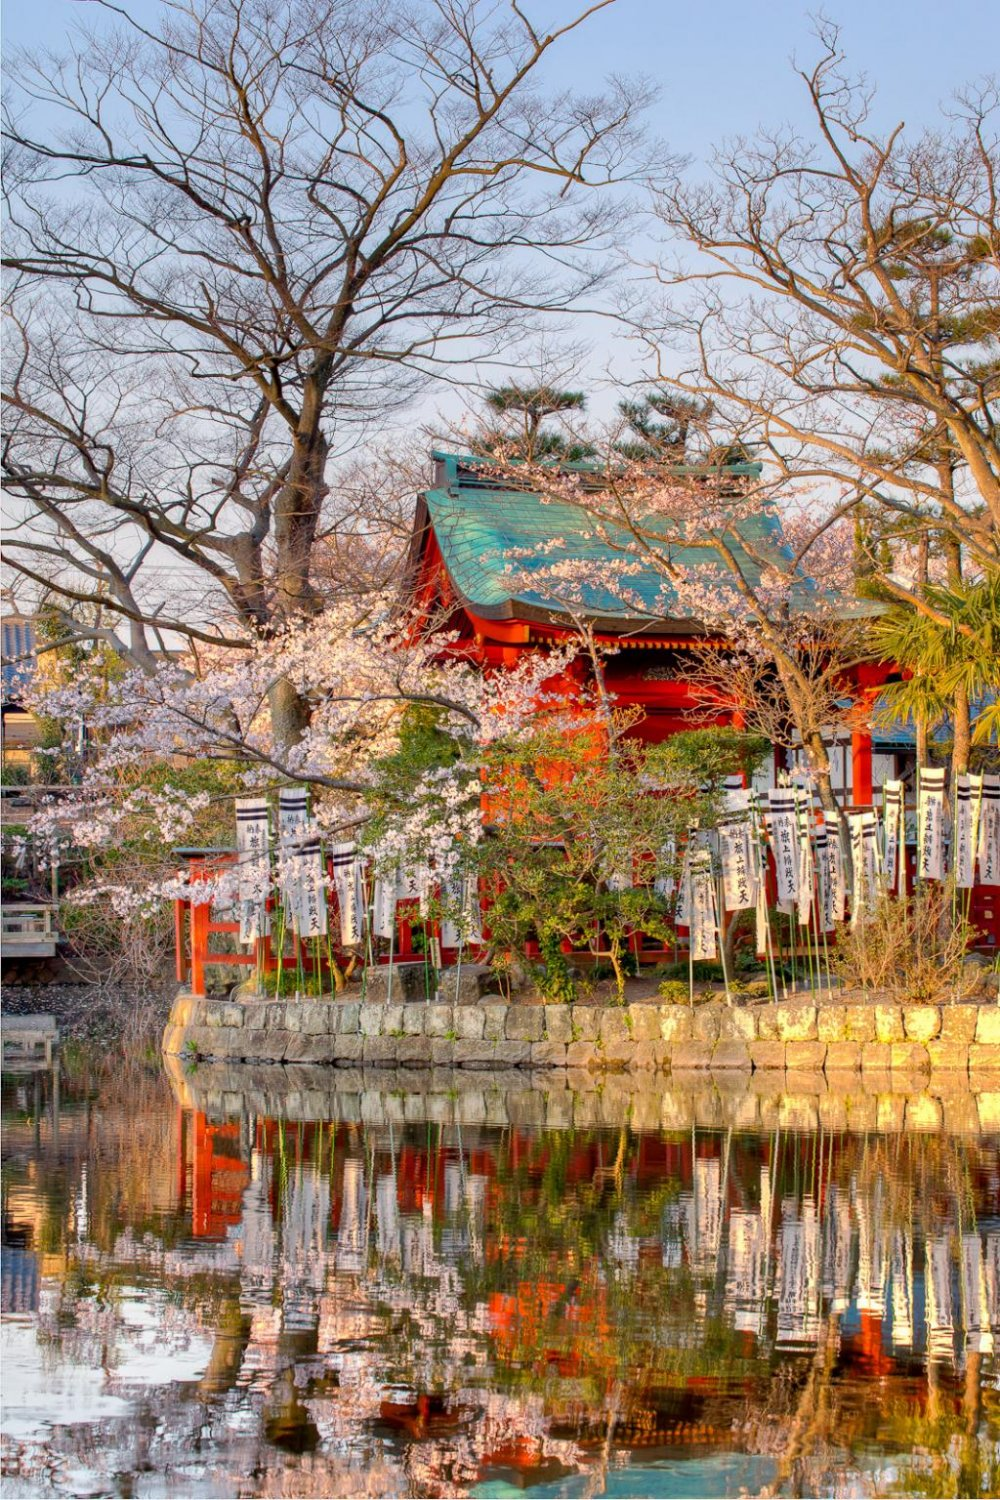 This too is Genpei-ike pond. (right side)